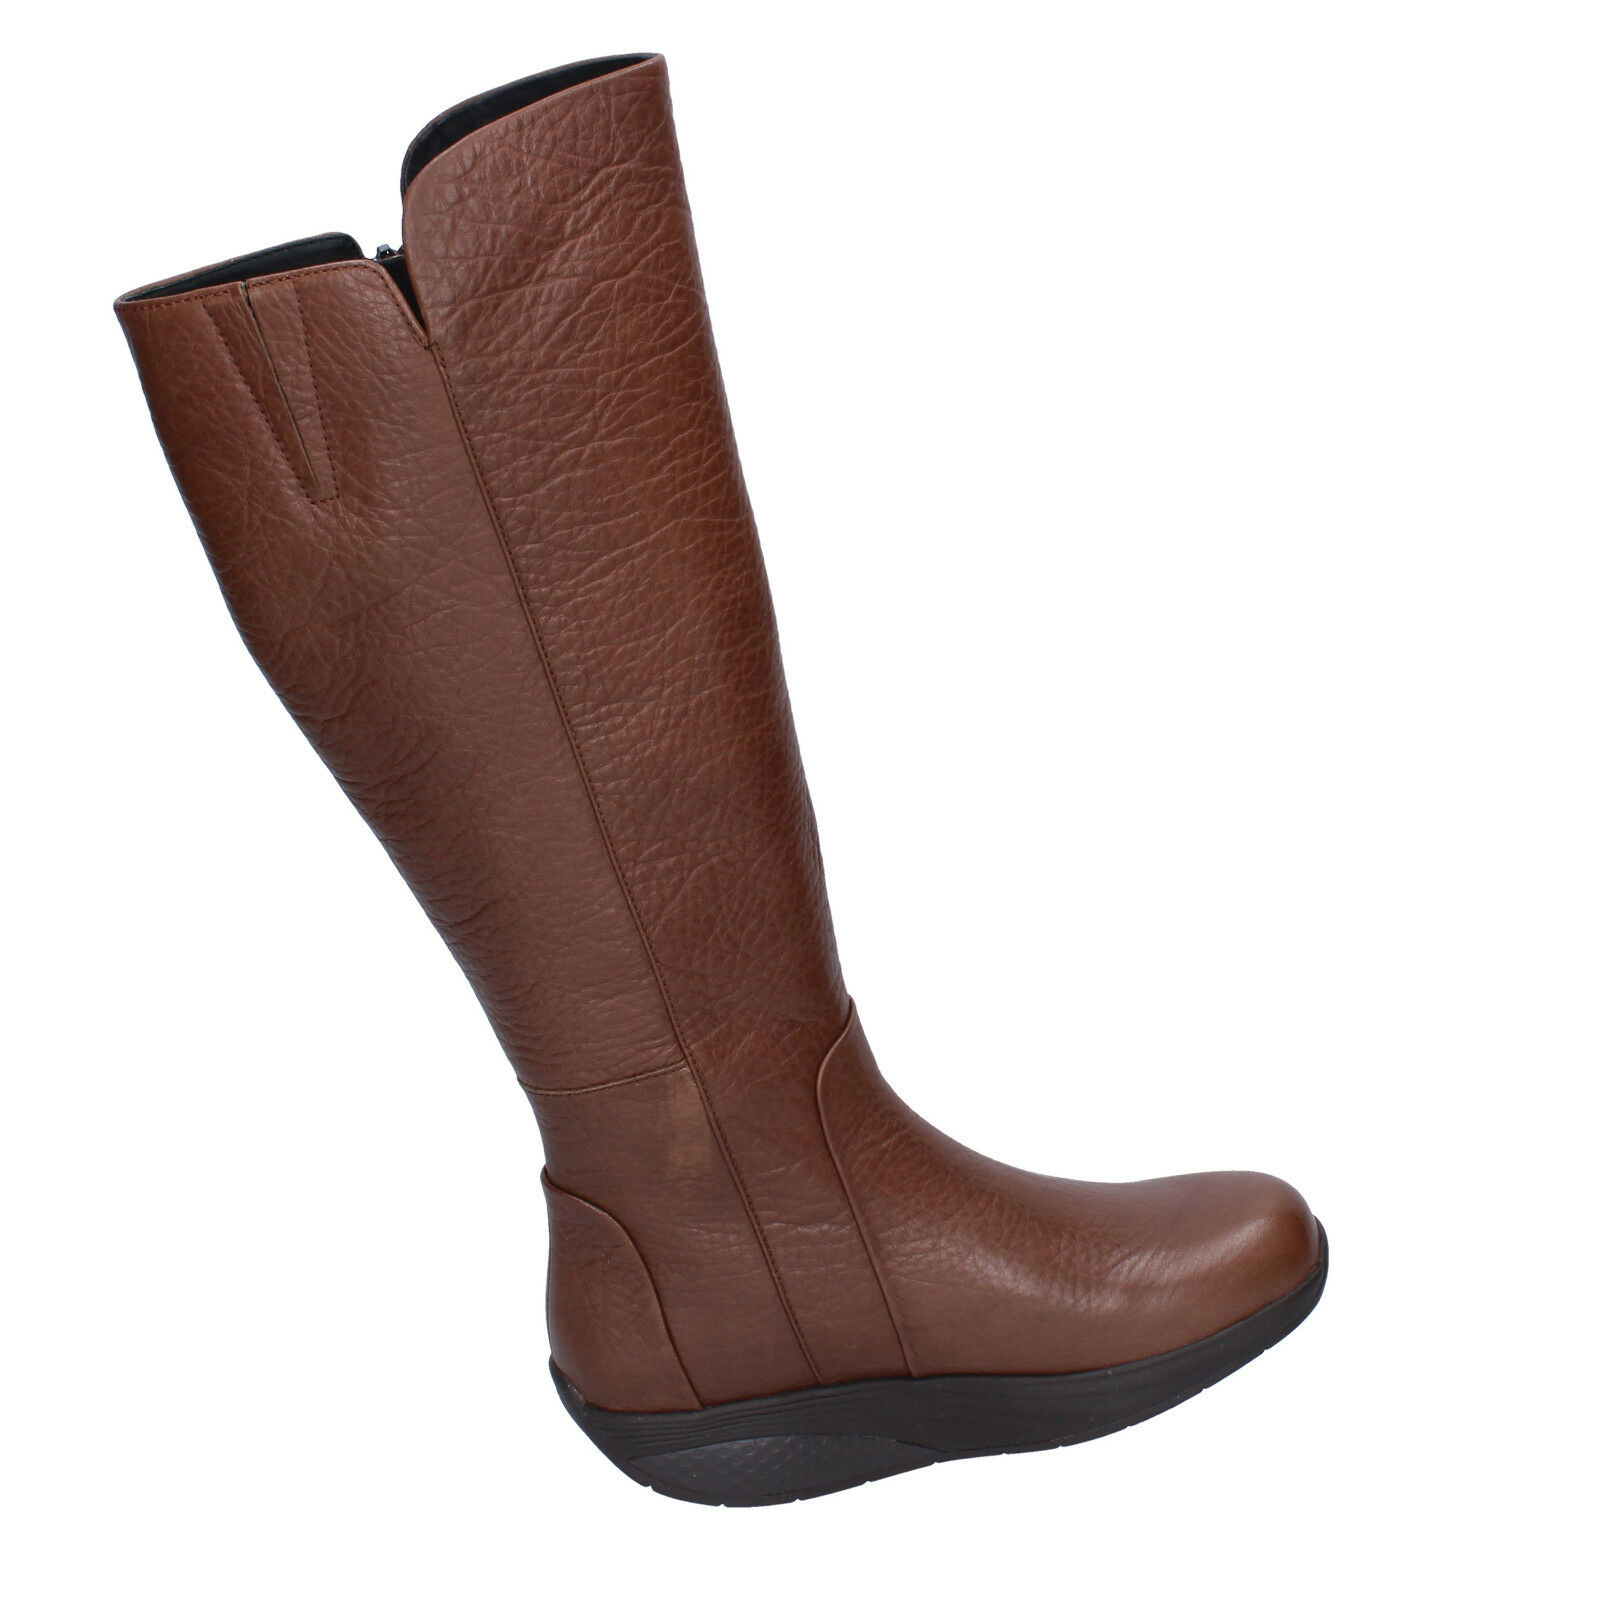 Women's shoes MBT 7   7,5 (EU (EU (EU 38) boots brown leather performance BT289-38 b8be7a